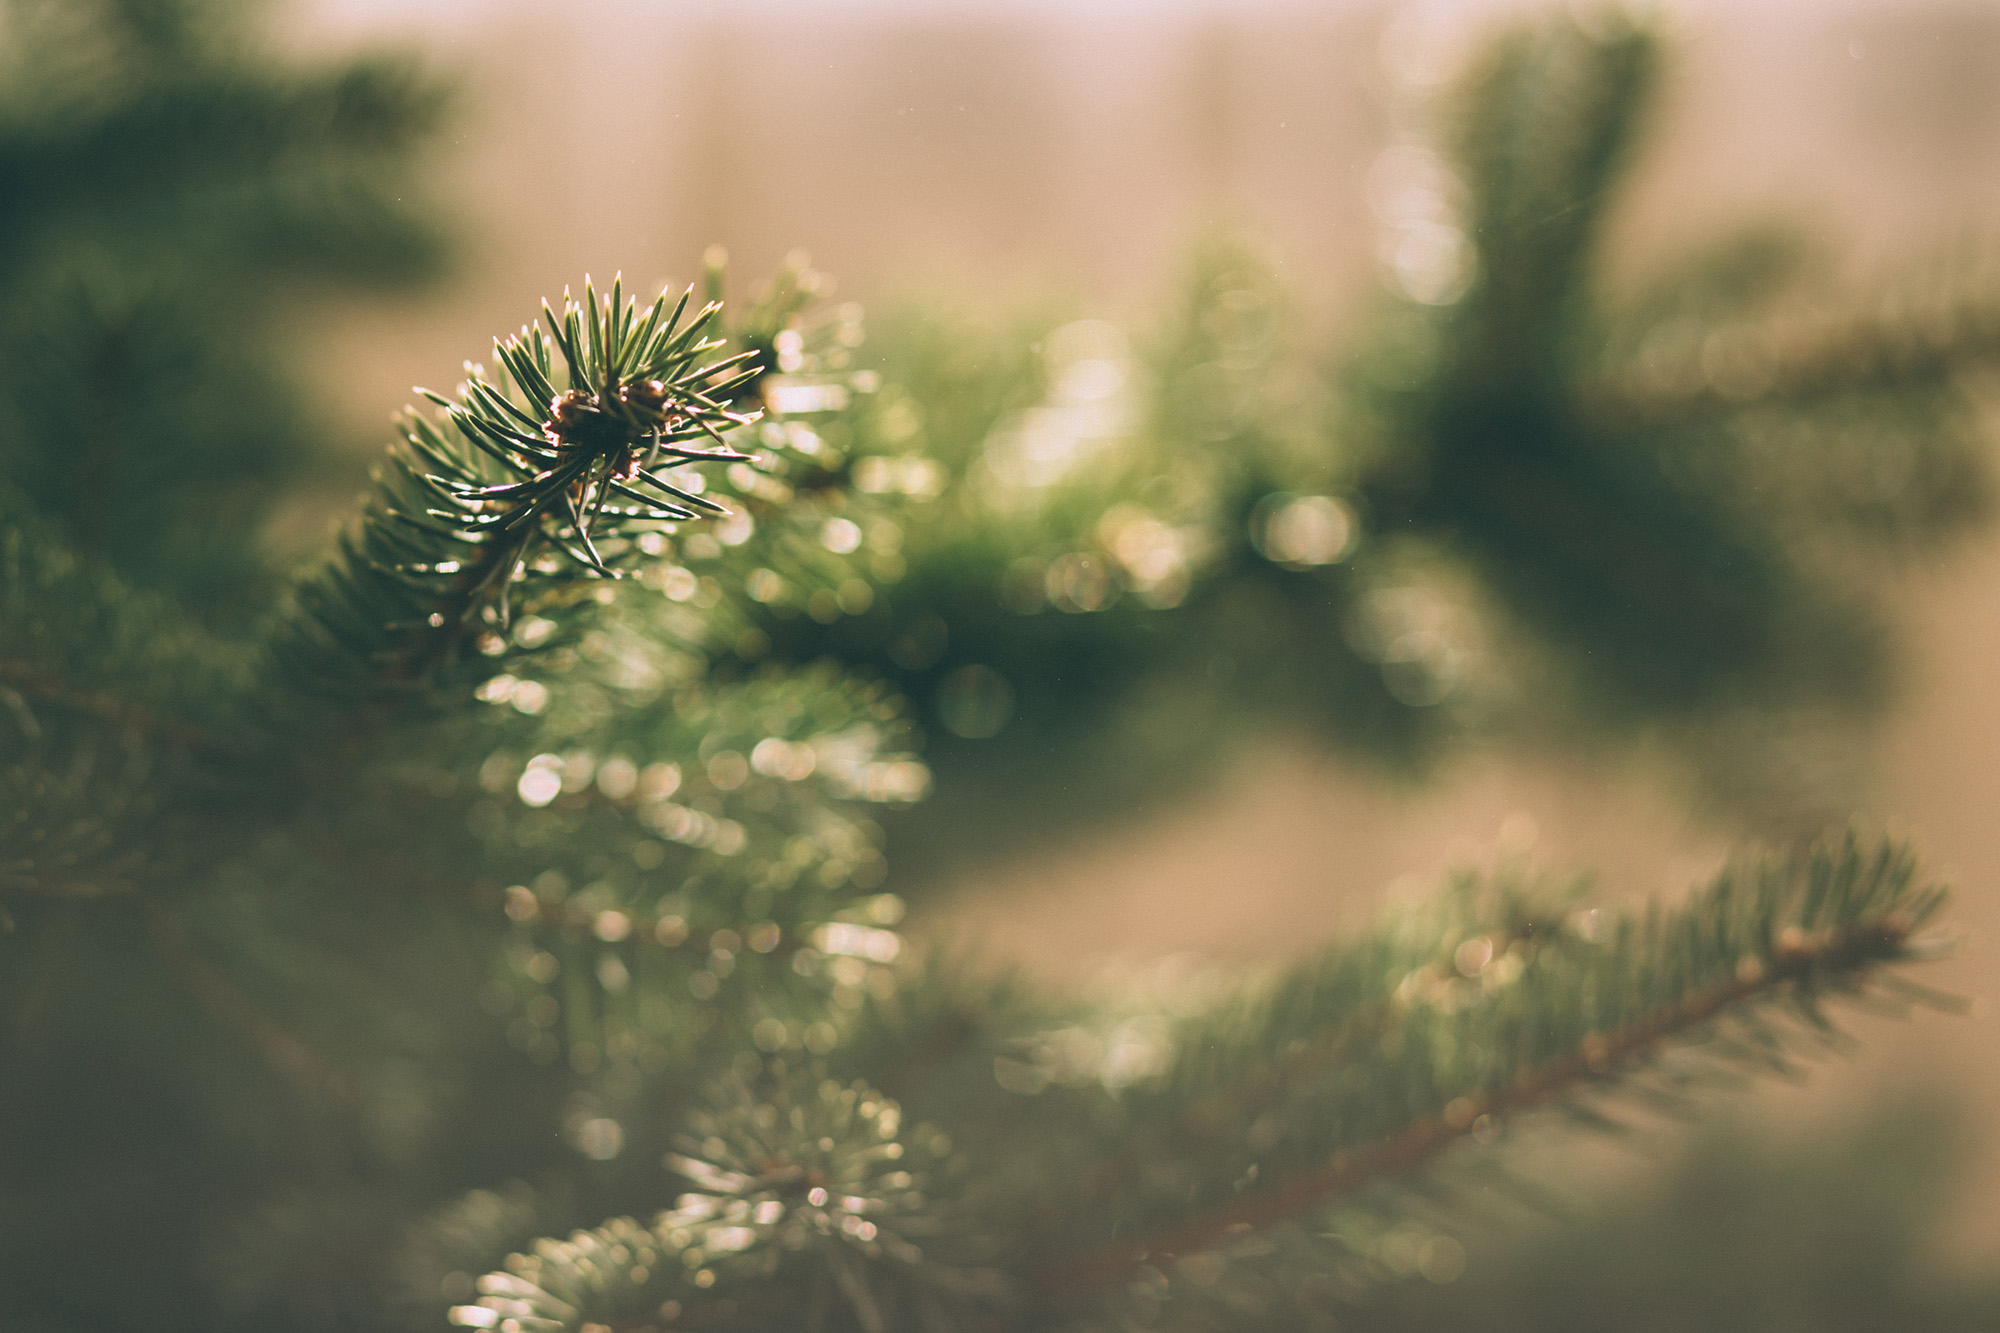 An enchanted Christmas starts here: 11 reasons to visit a choose-and-cut tree farm in the N.C. Mountains of Jackson County